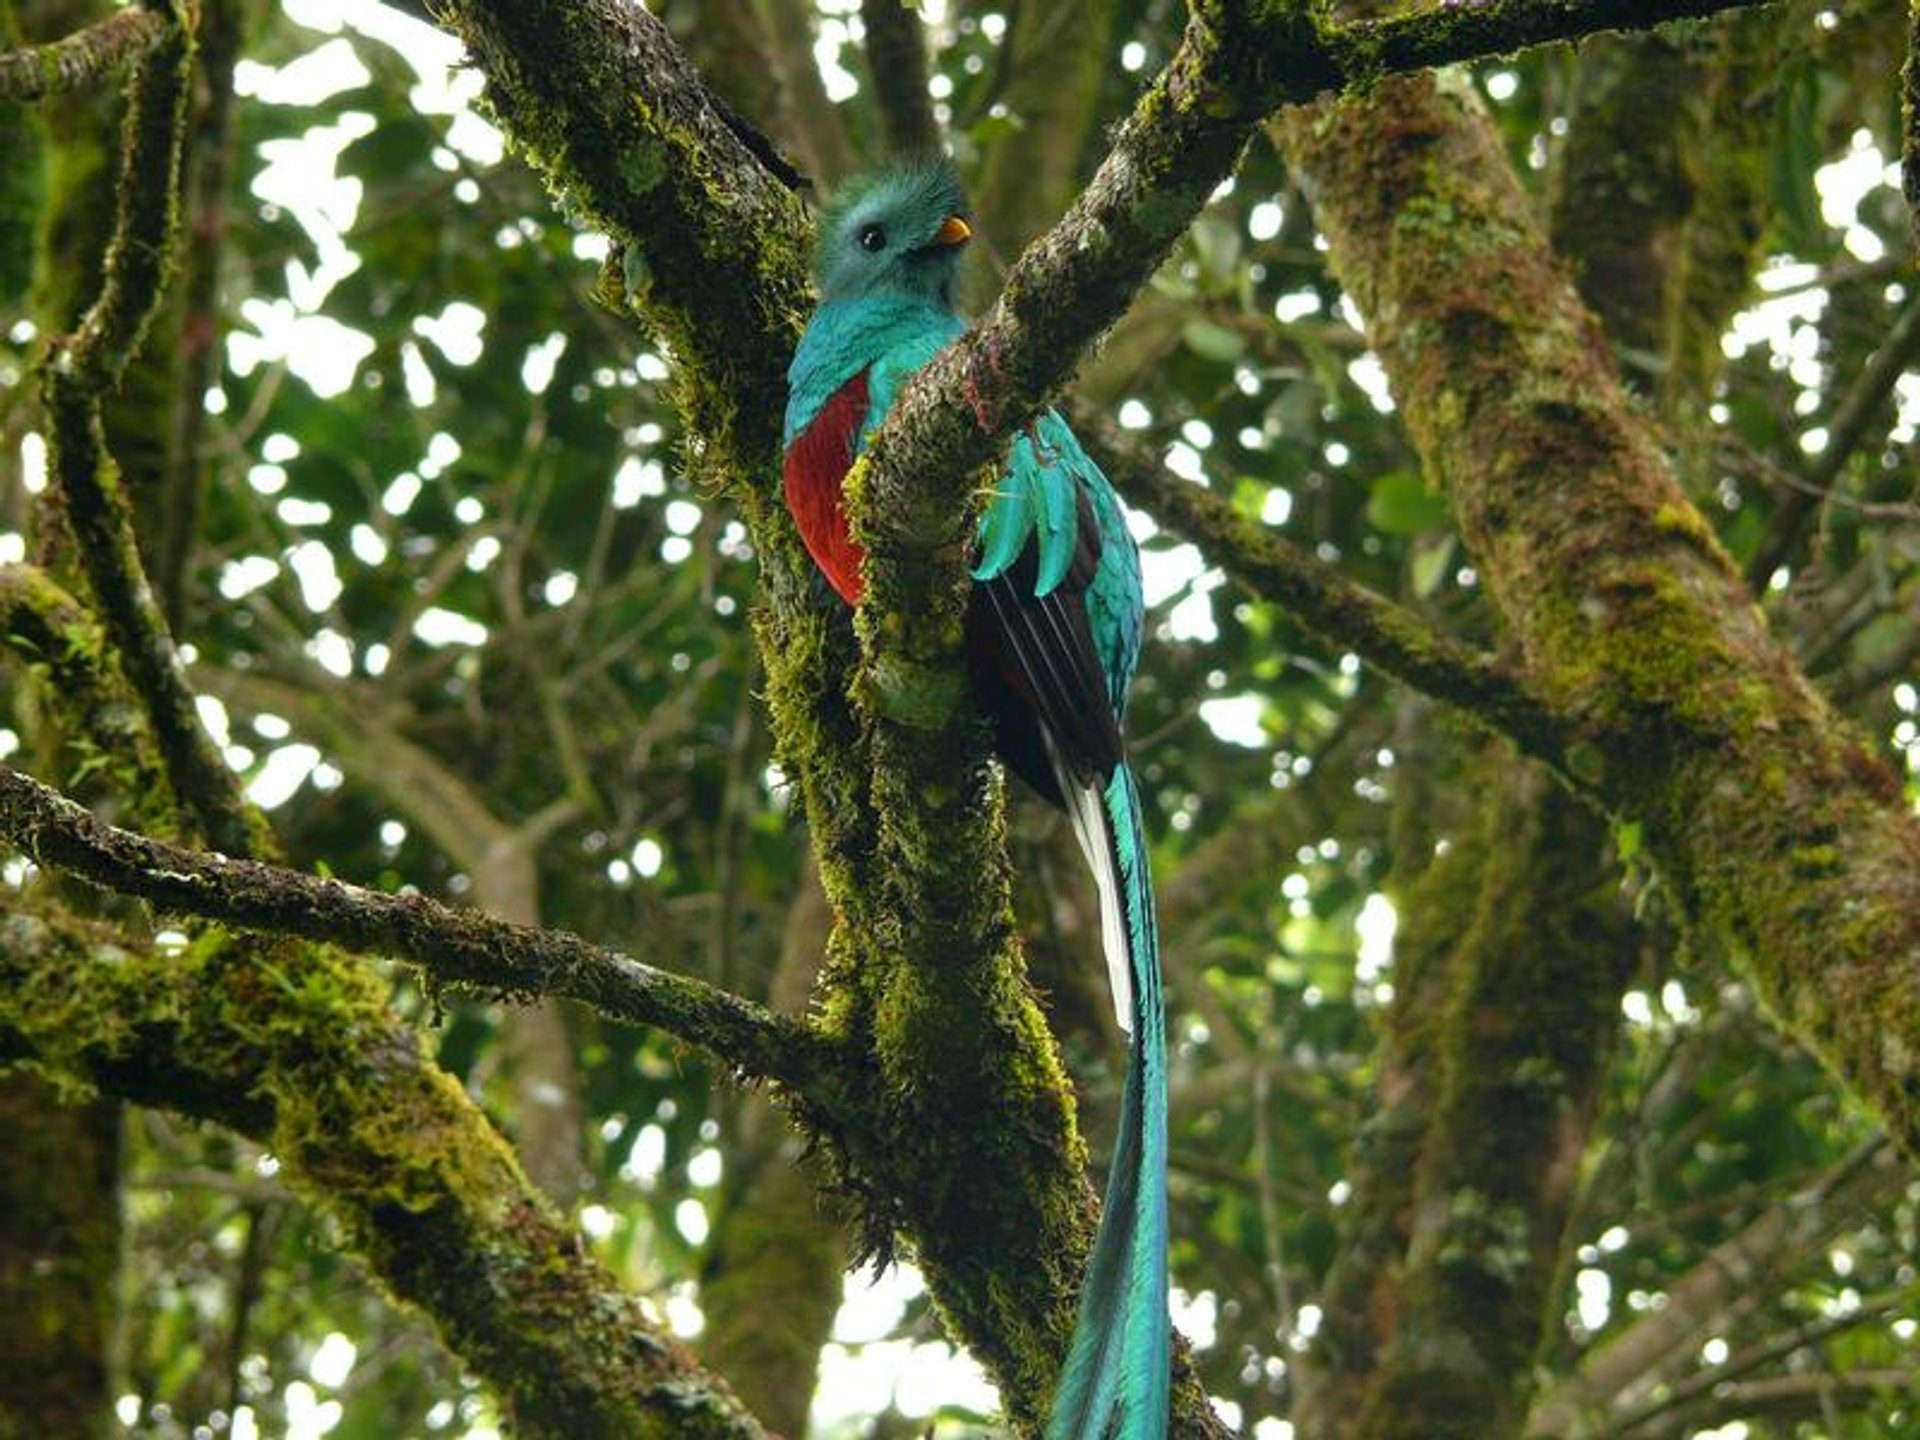 Resplendent Quetzal, national bird of Guatemala 2019